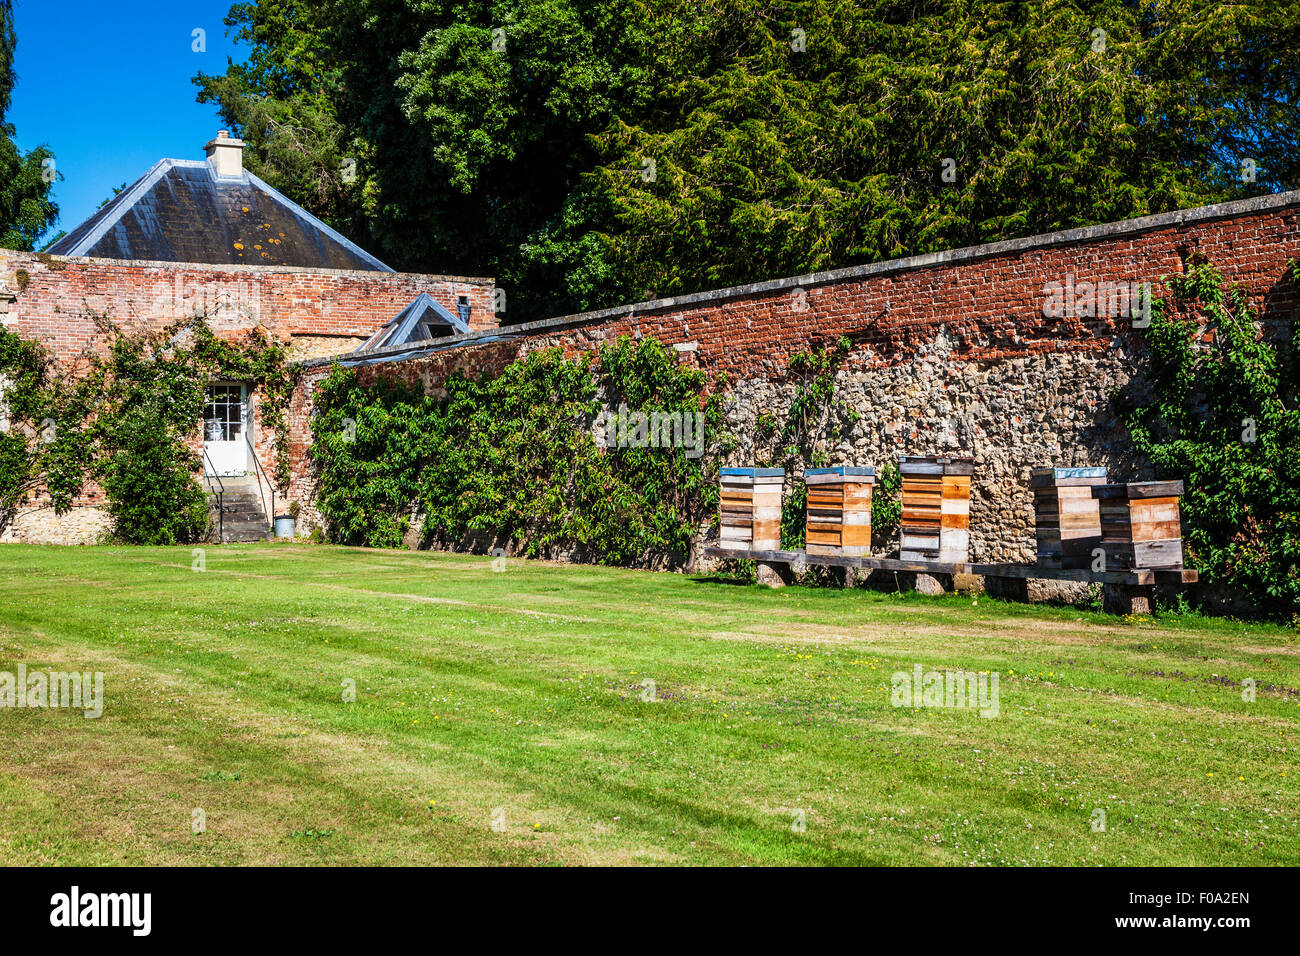 Bee hives in the walled gardens at Bowood House in Wiltshire. - Stock Image